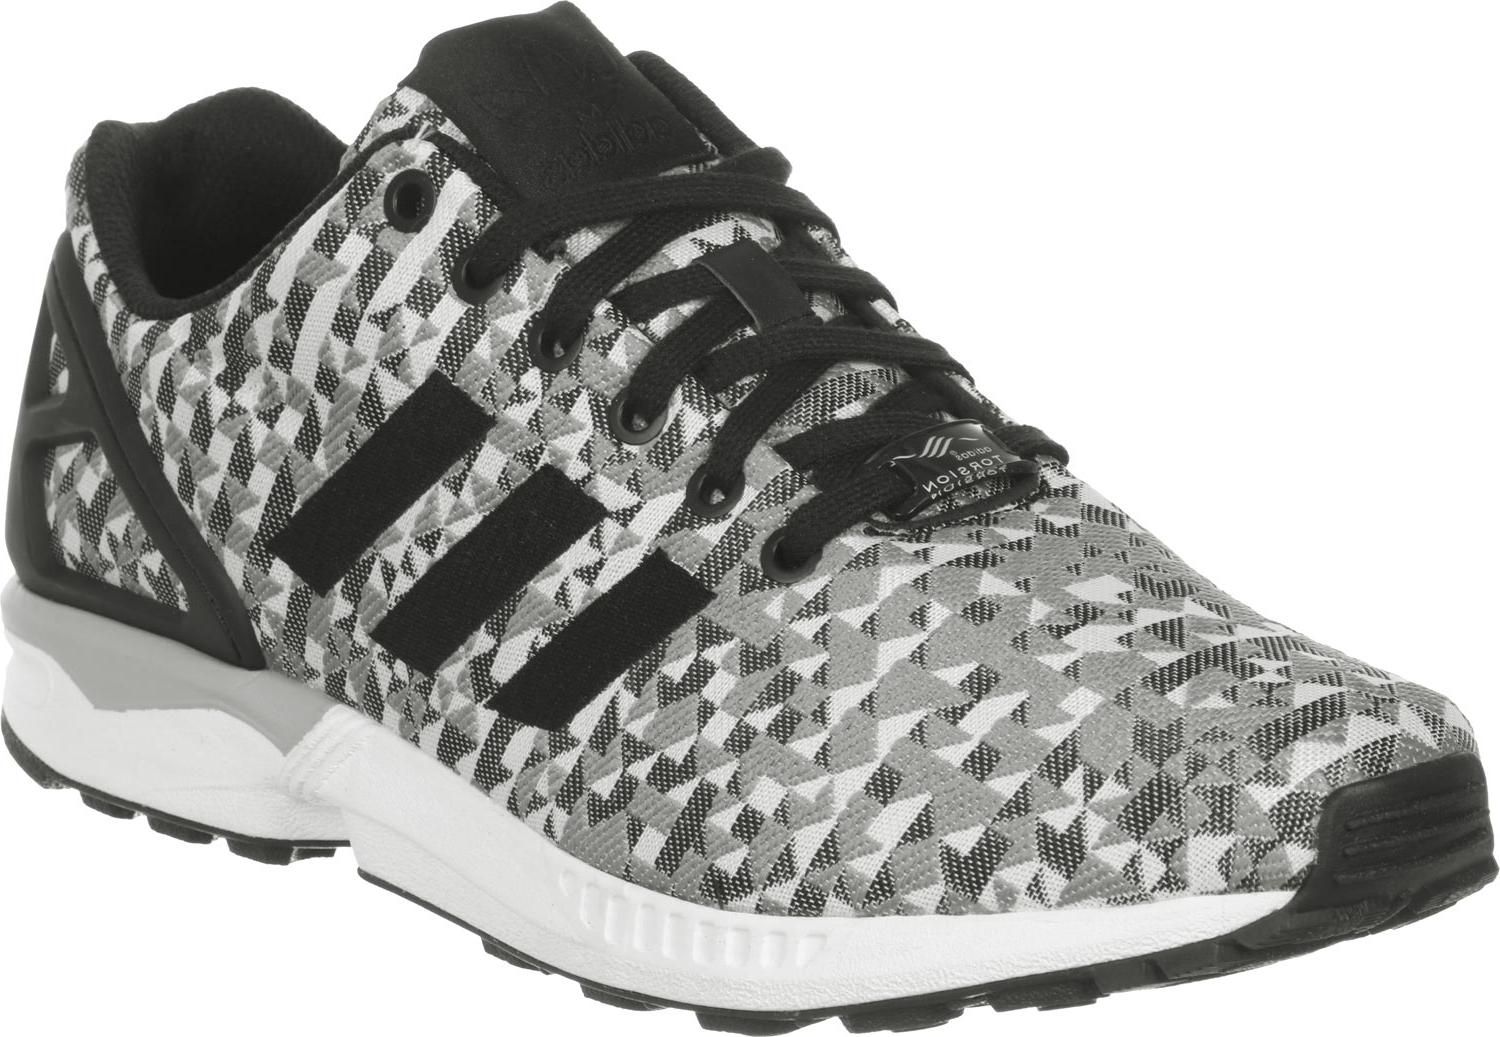 adidas zx flux bianche e nere 085f549f99a3